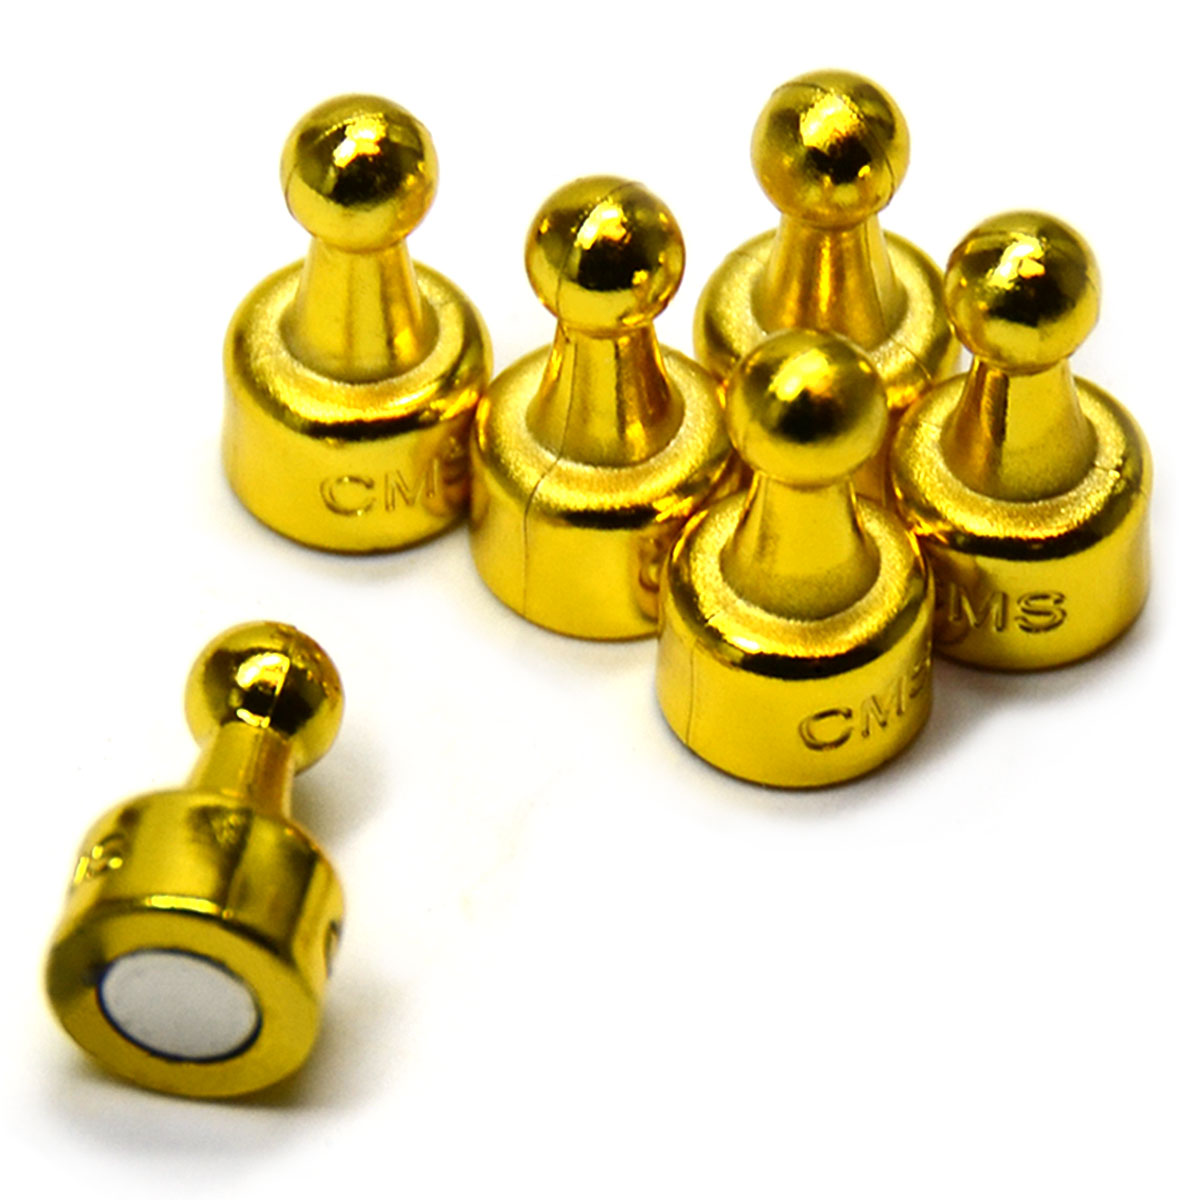 24 Ct. NeoPin® Gold Magnetic Push Pins - Super Strong Neodymium Magnets. Great for Magnetic Whiteboards, Refrigerators, other Applications